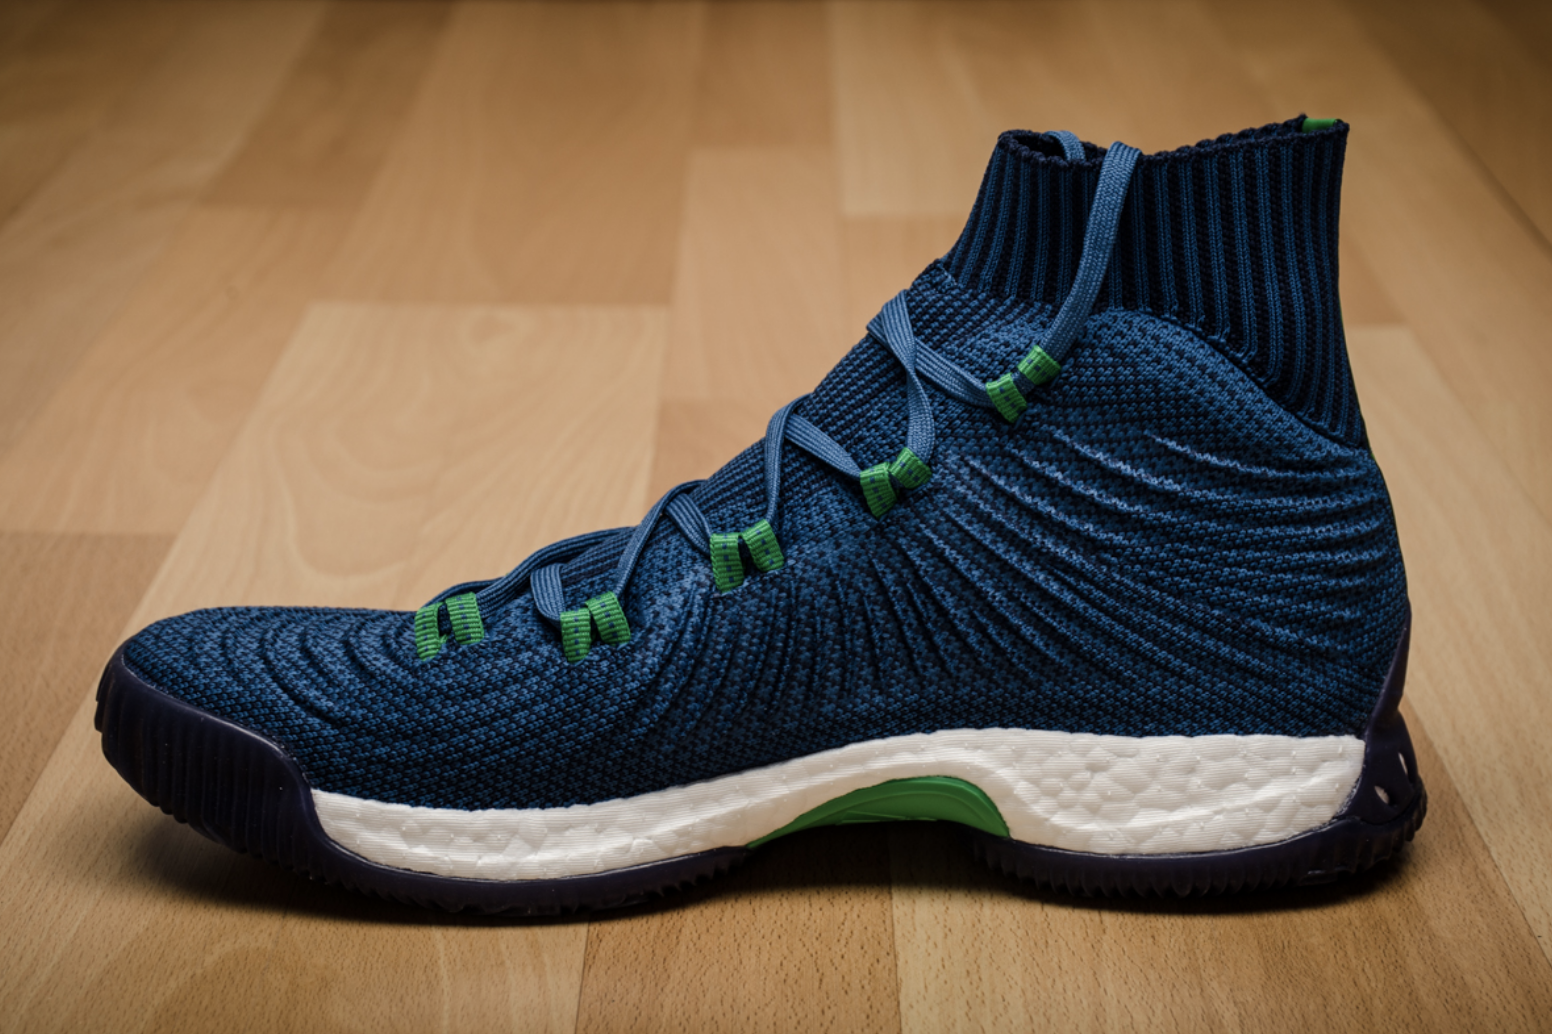 brand new 3fabf b64b4 ... NEW! adidas CRAZY EXPLOSIVE PRIMEKNIT Andrew Wiggins Navy Blue Shoes  BY4468 PE